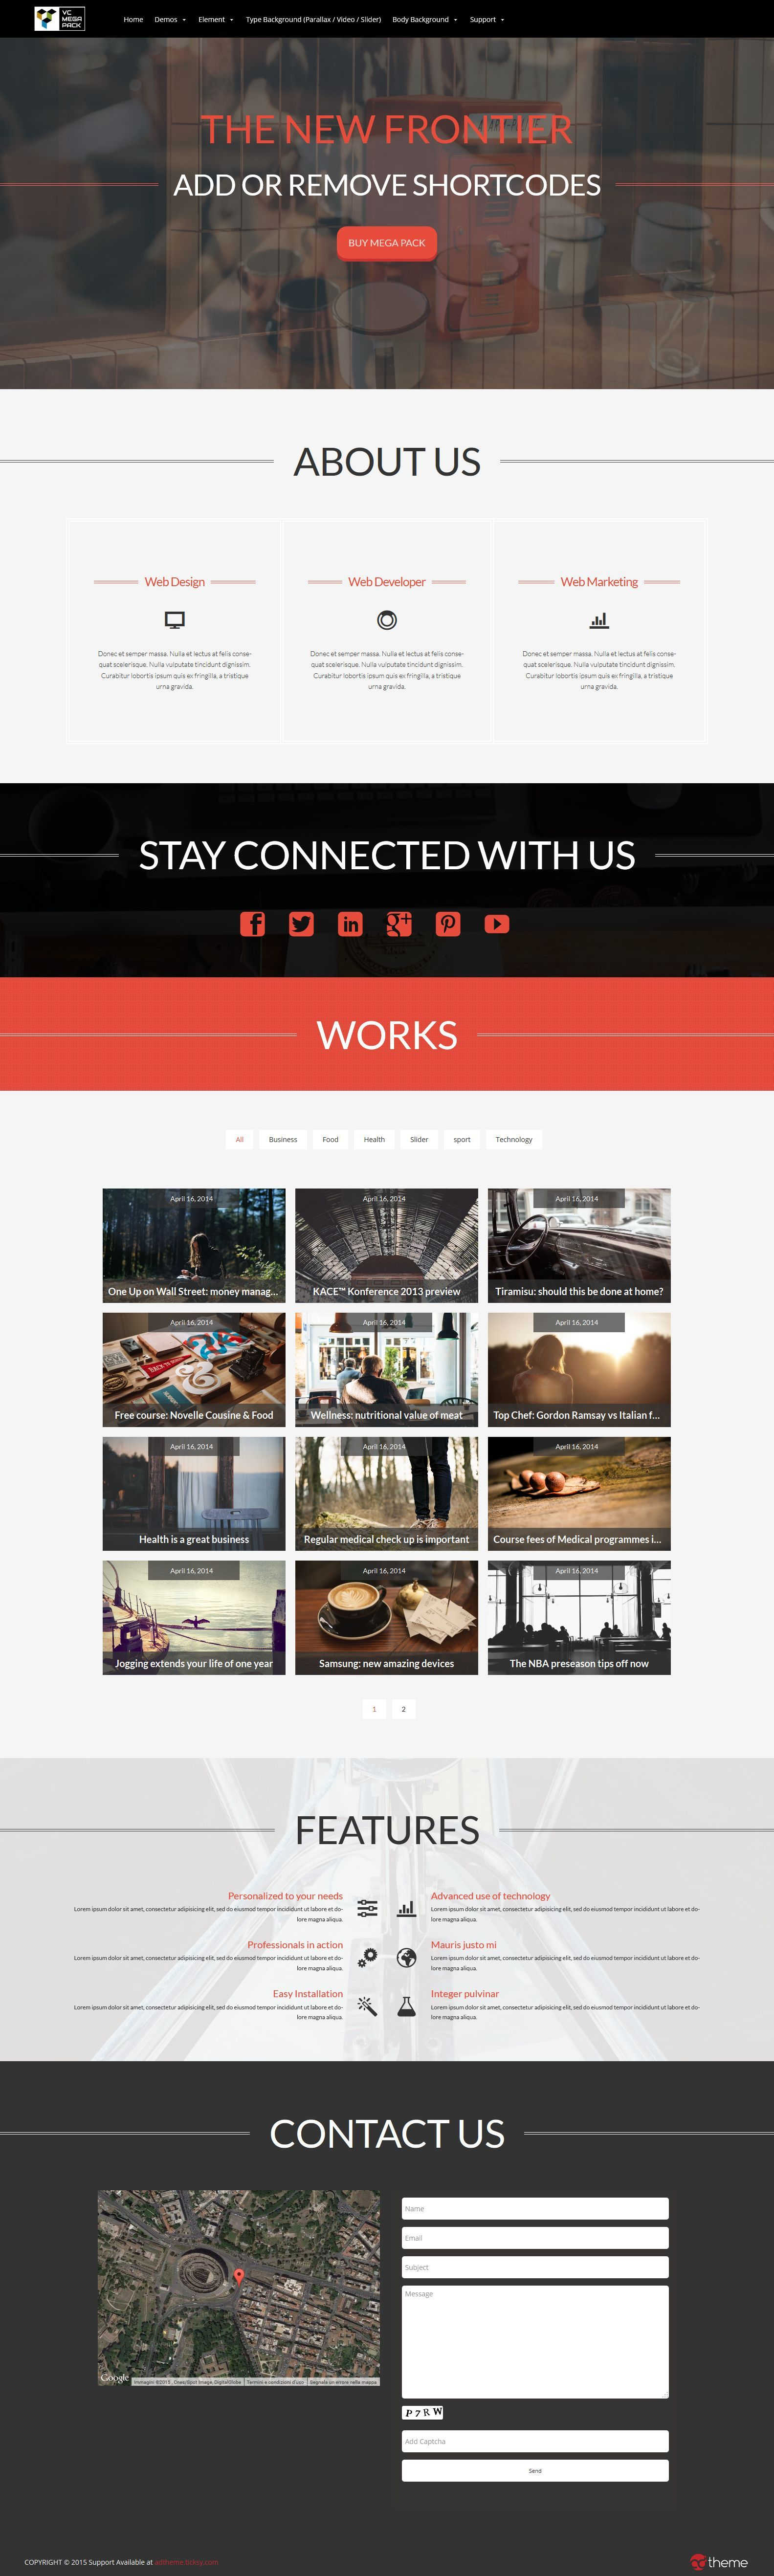 Visual Composer Mega Pack - Addons and Templates by ad-theme ...